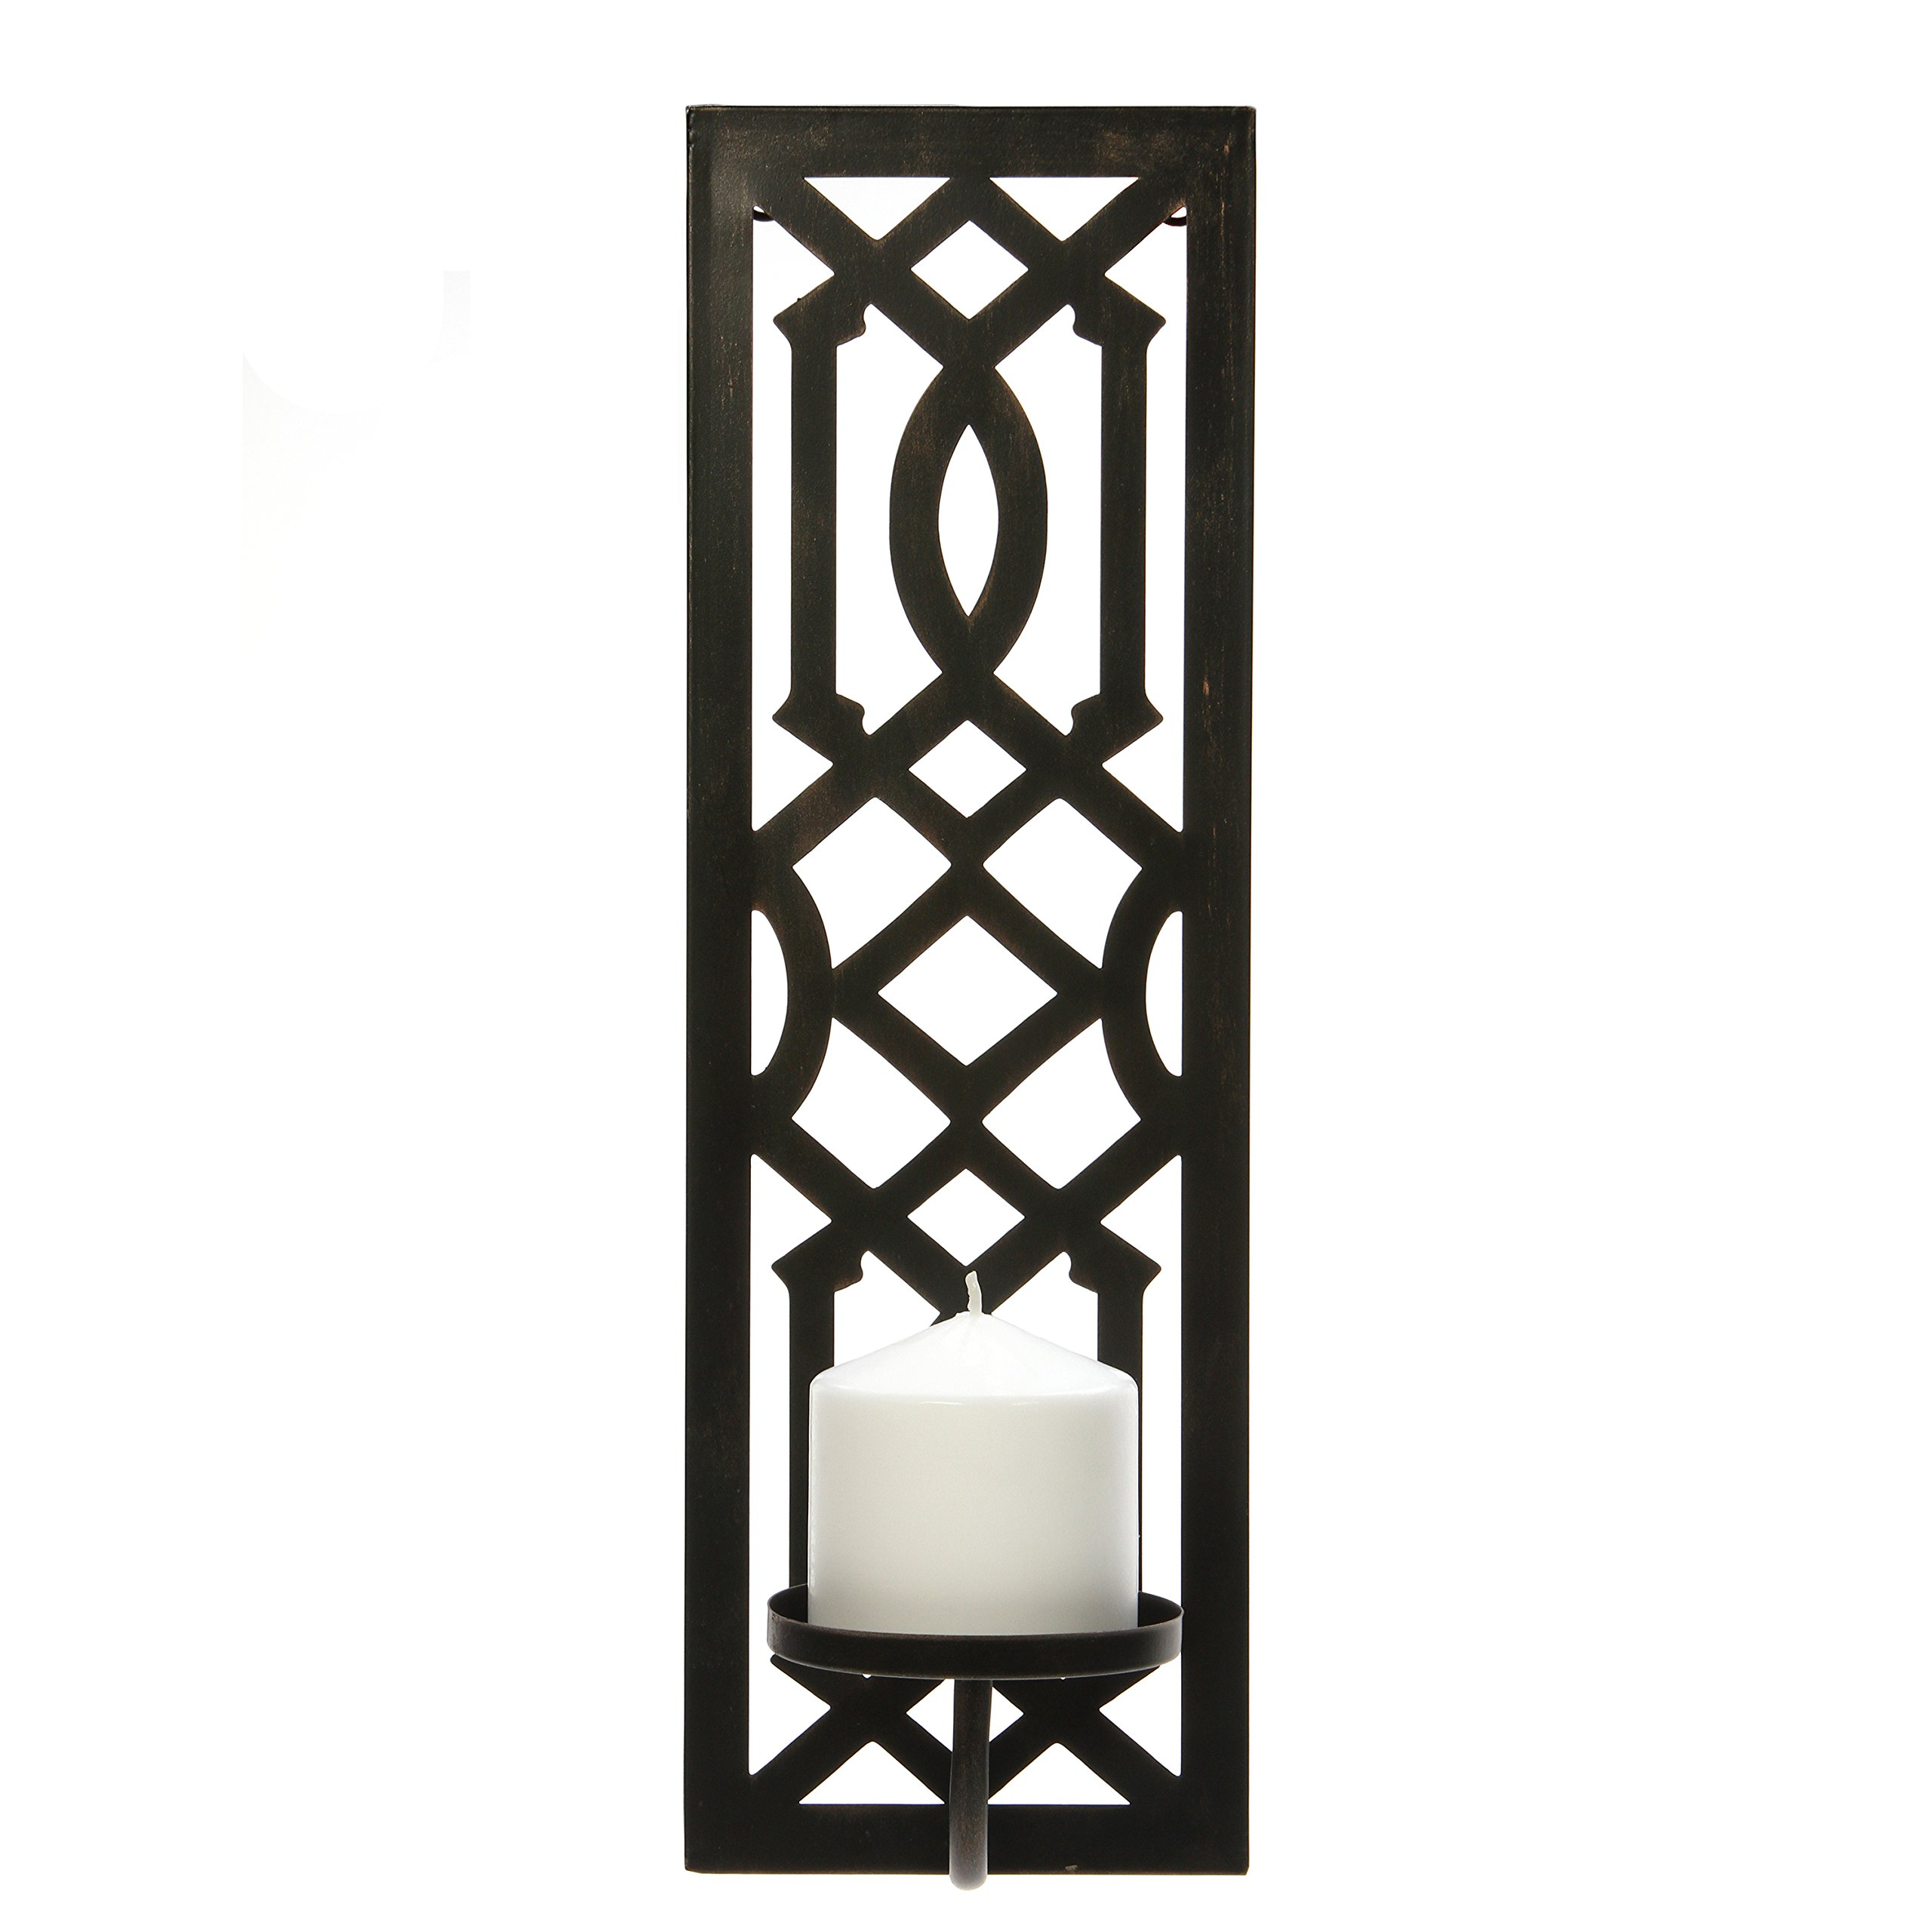 Hosley 16.5'' High Oil Bronze Finish Metal Wall Sconce. Great Wall Decor Ideal Gift for Wedding, Party, Spa, Home Decor O5